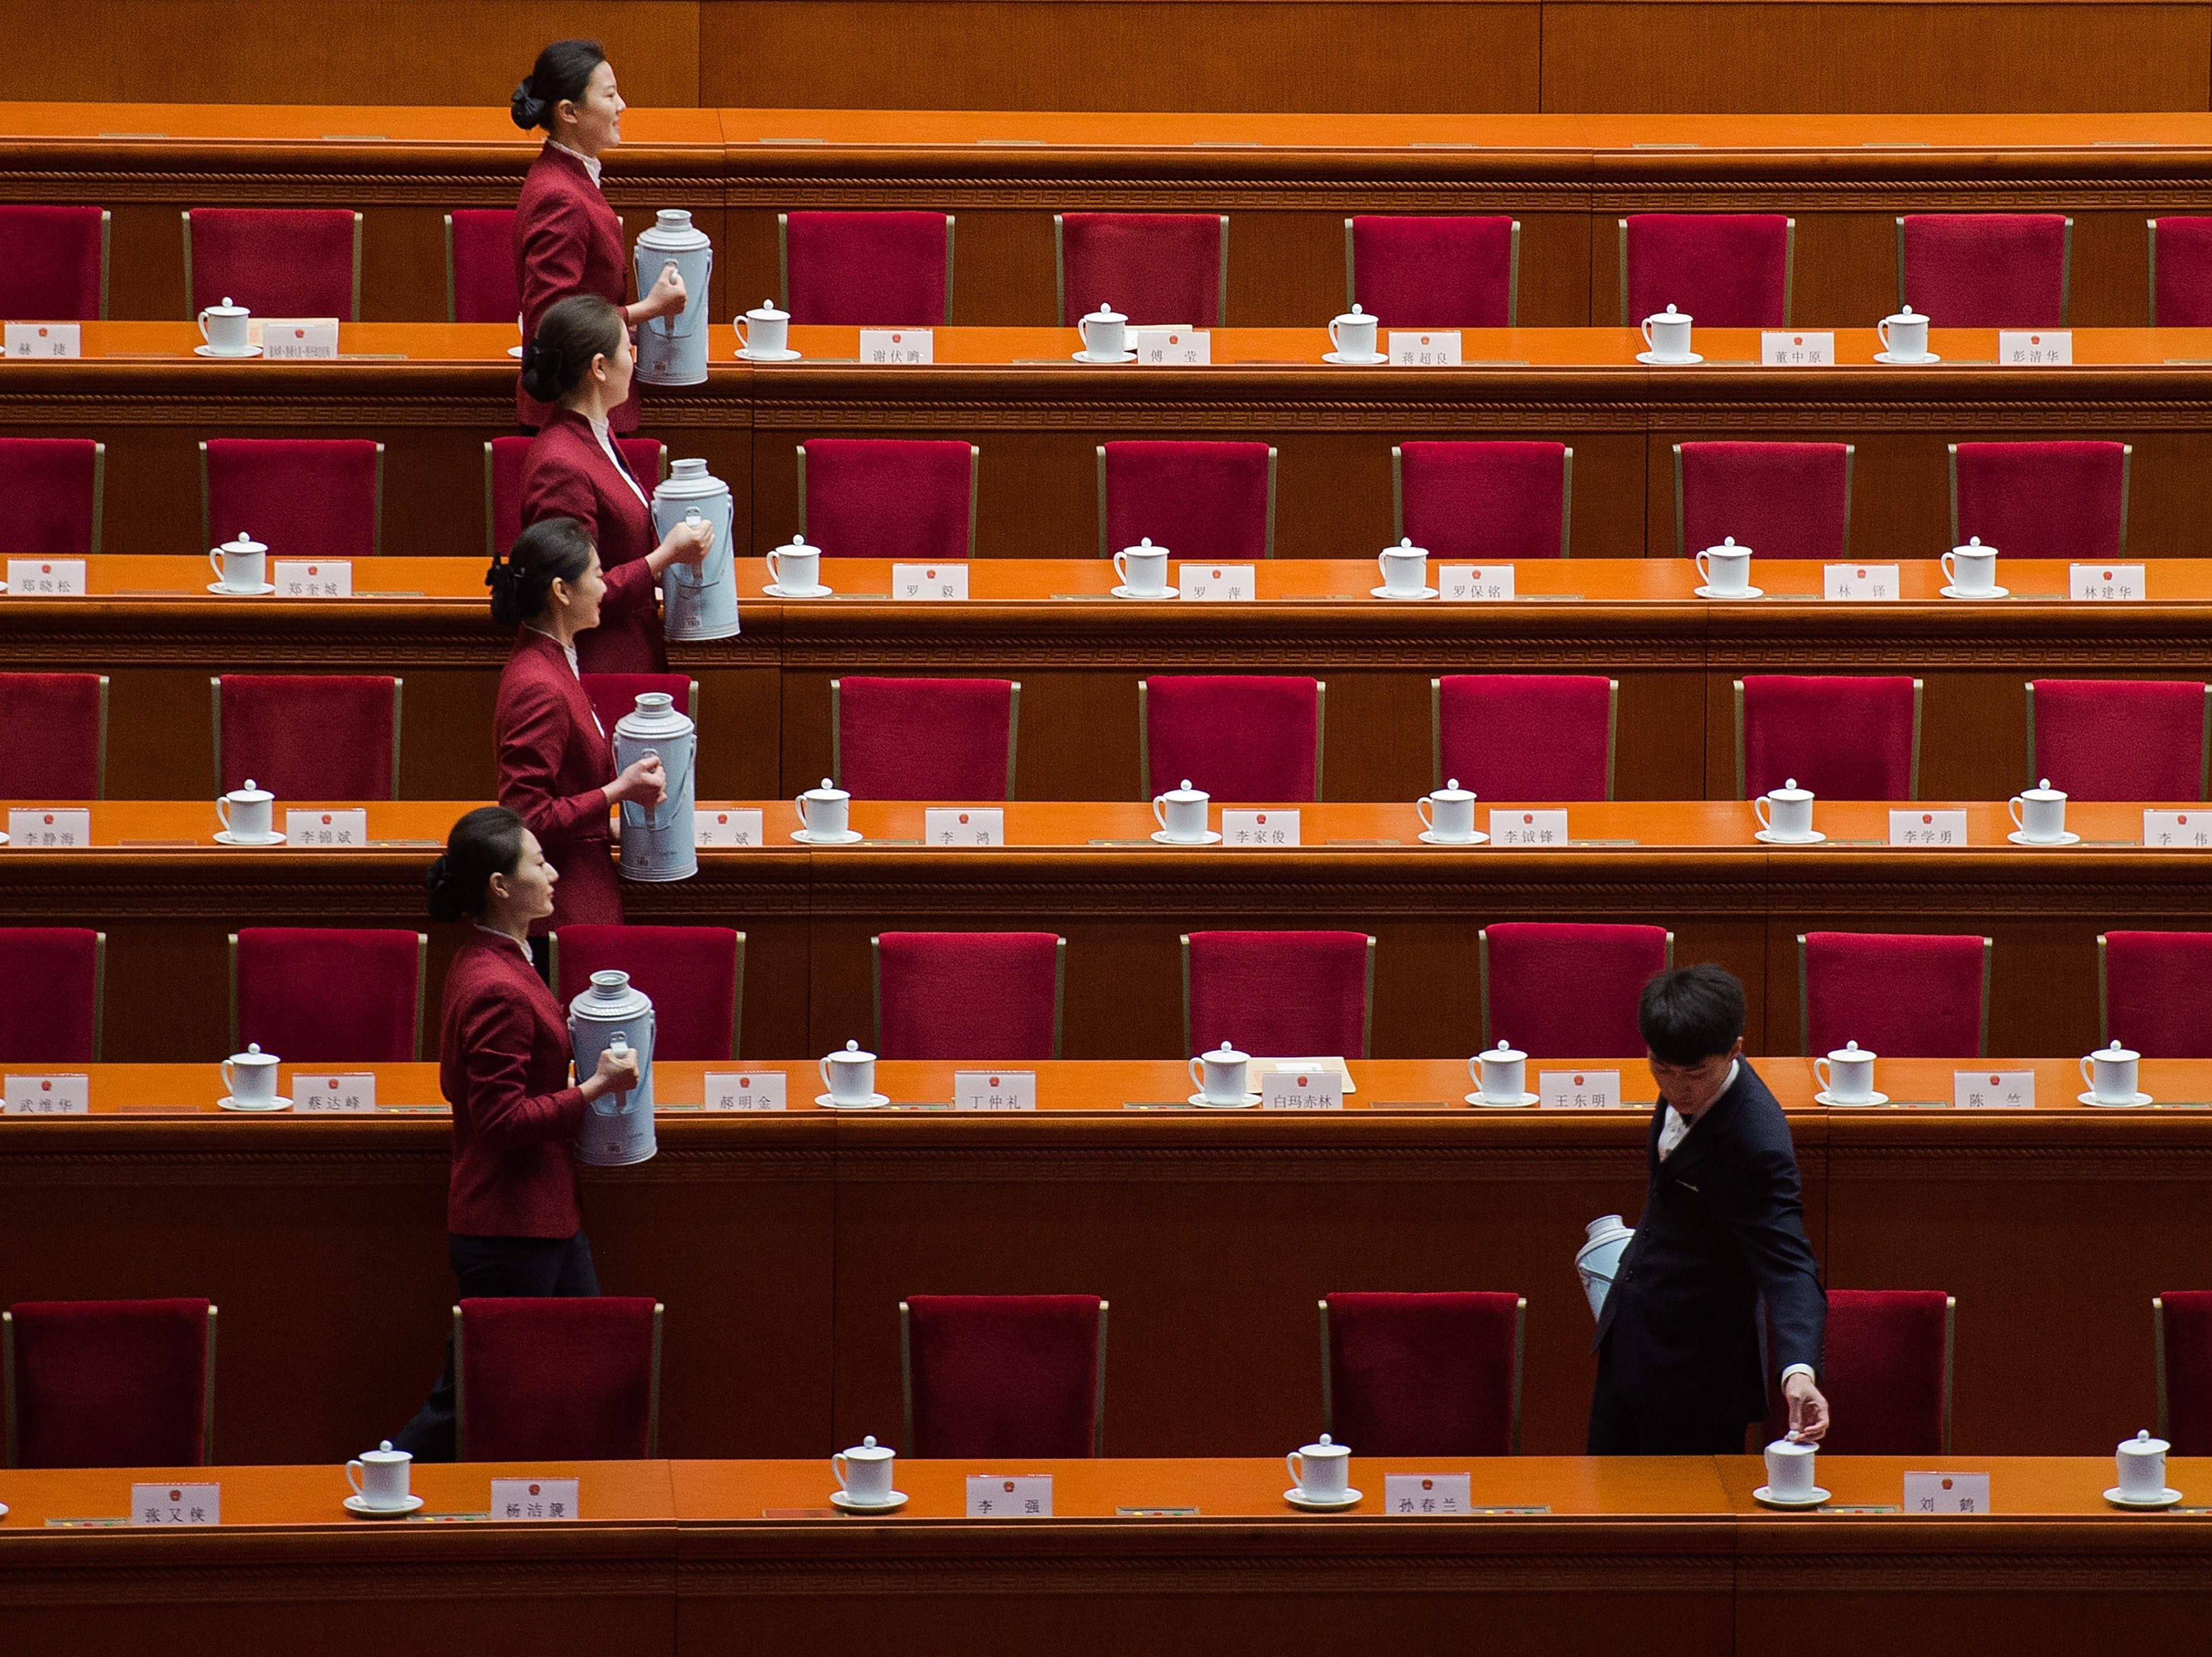 March 18, 2018: Hostesses serve tea ahead of the sixth plenary session of the National People's Congress at the Great Hall of the People in Beijing.